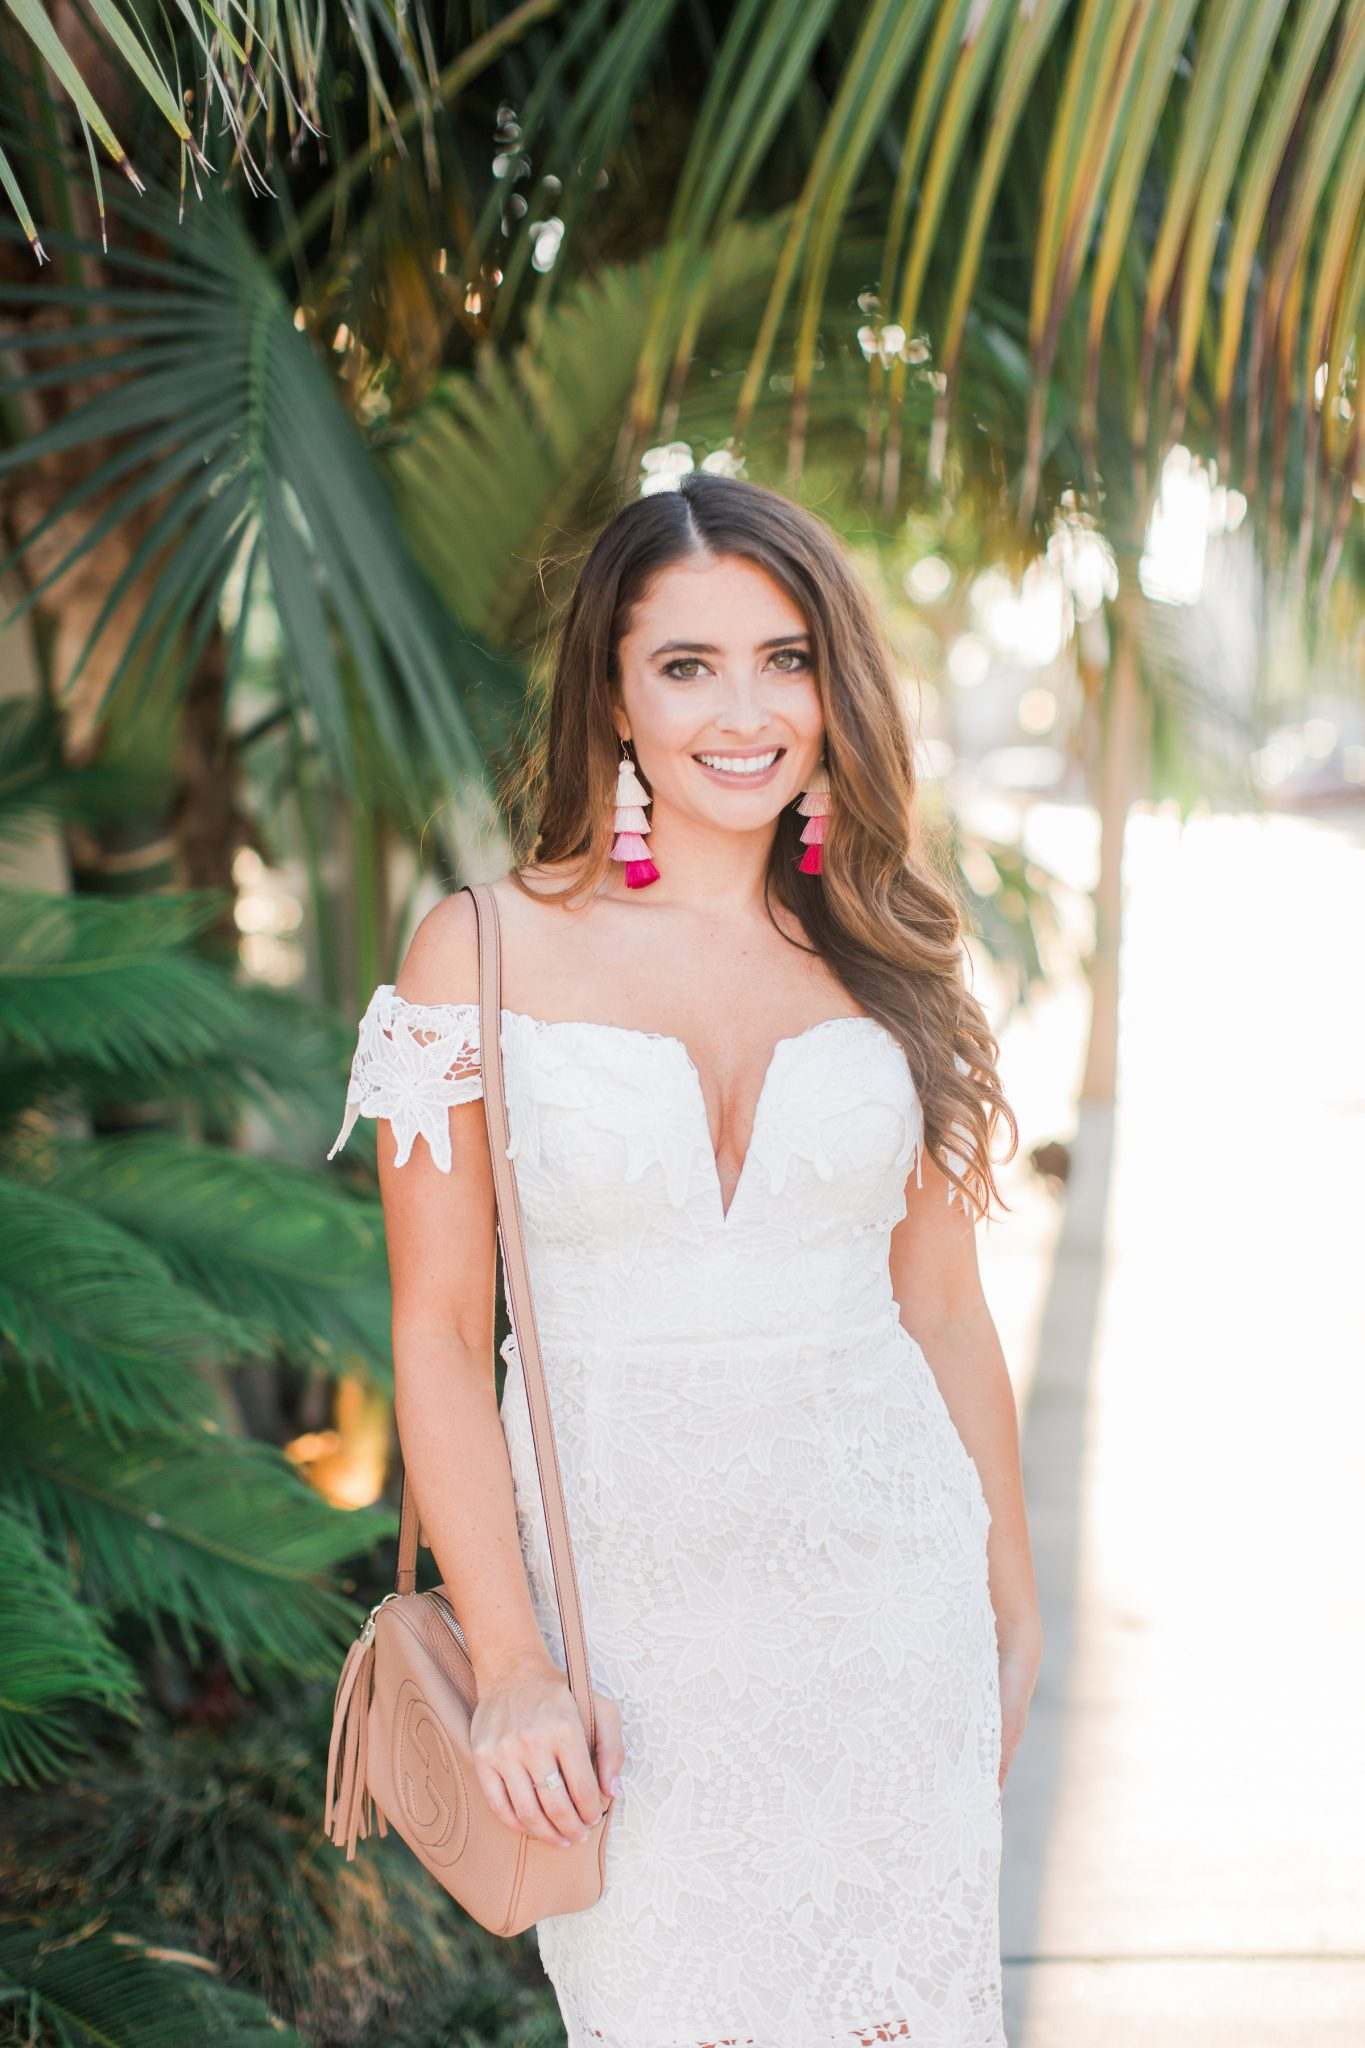 Maxie Elle | Bride-to-be Looks